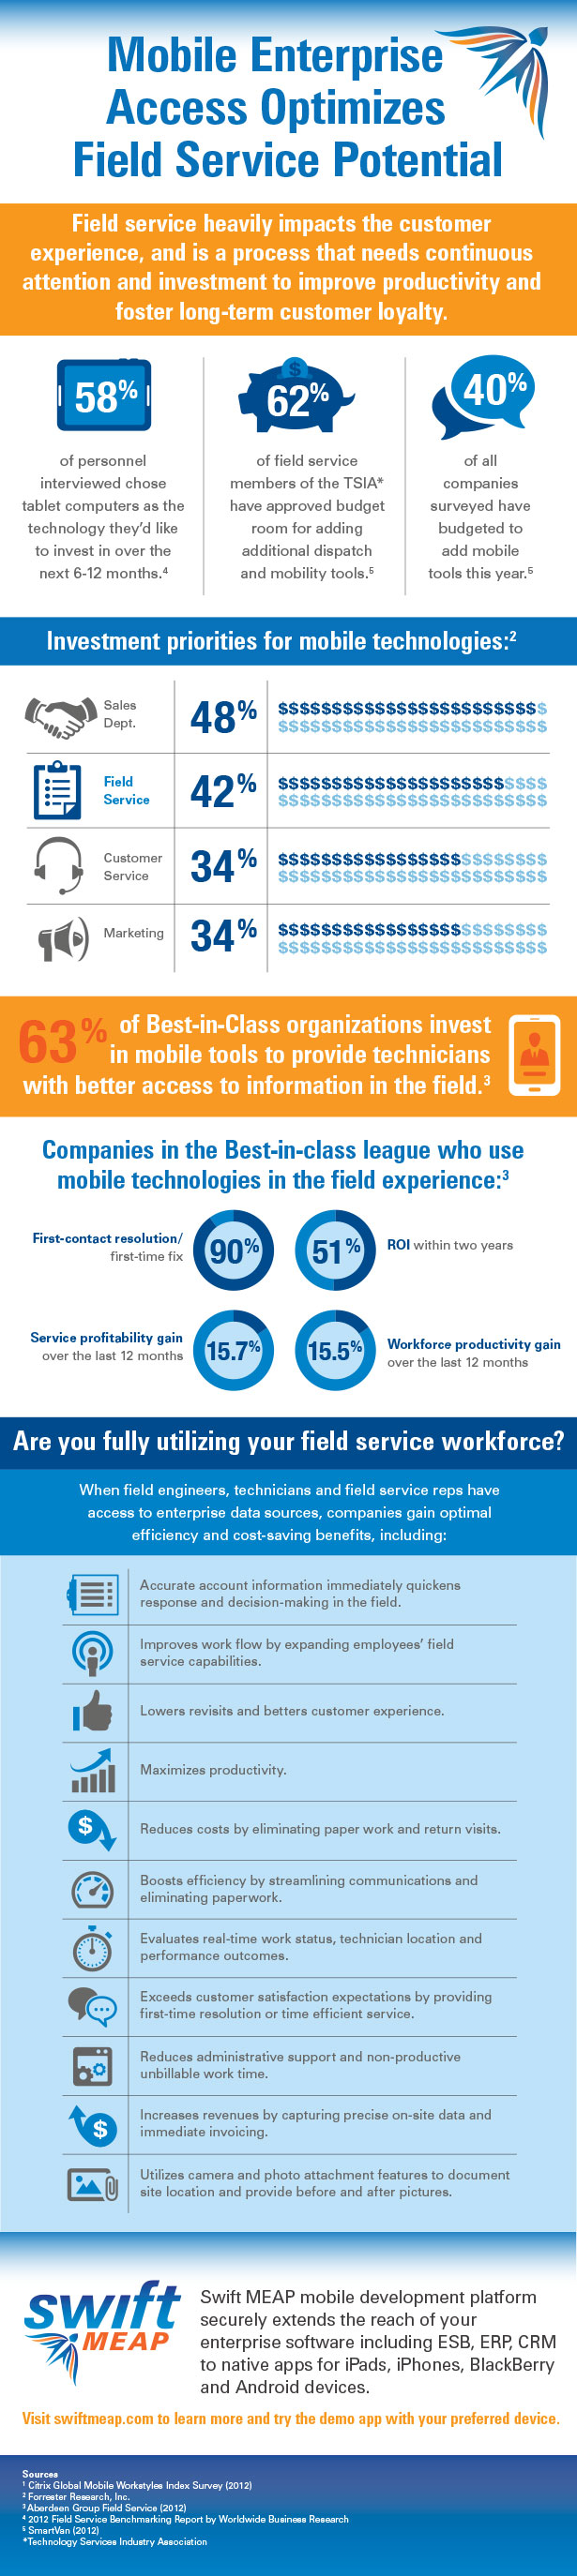 Mobile Enterprise Access Optimizes Field Service Potential